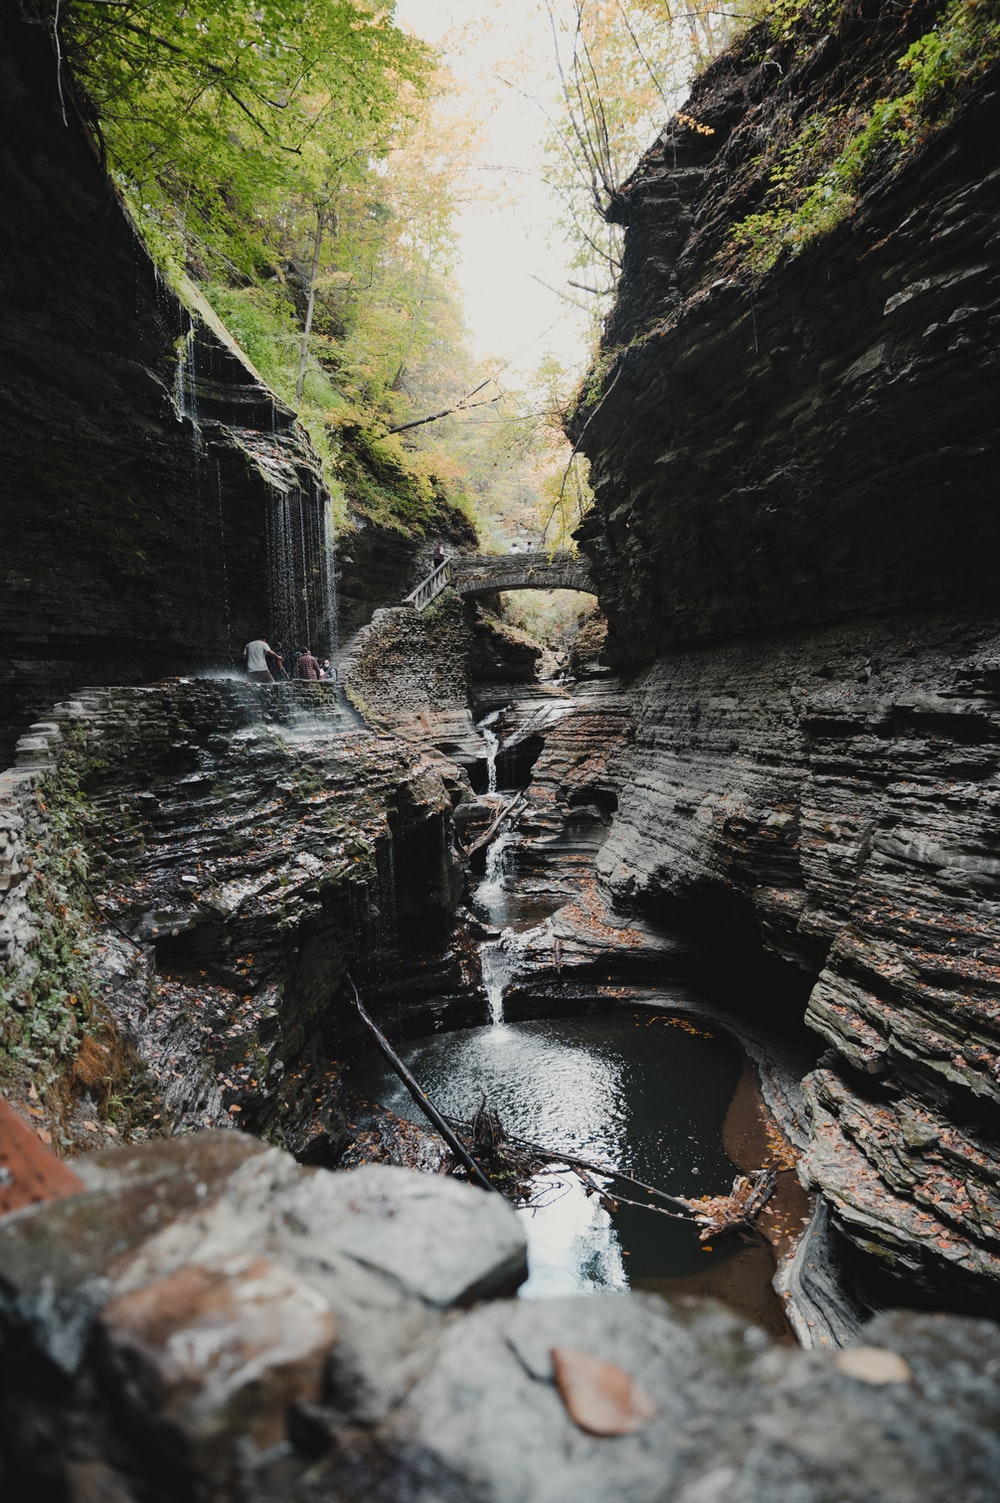 water falls between brown and green rock formation during daytime